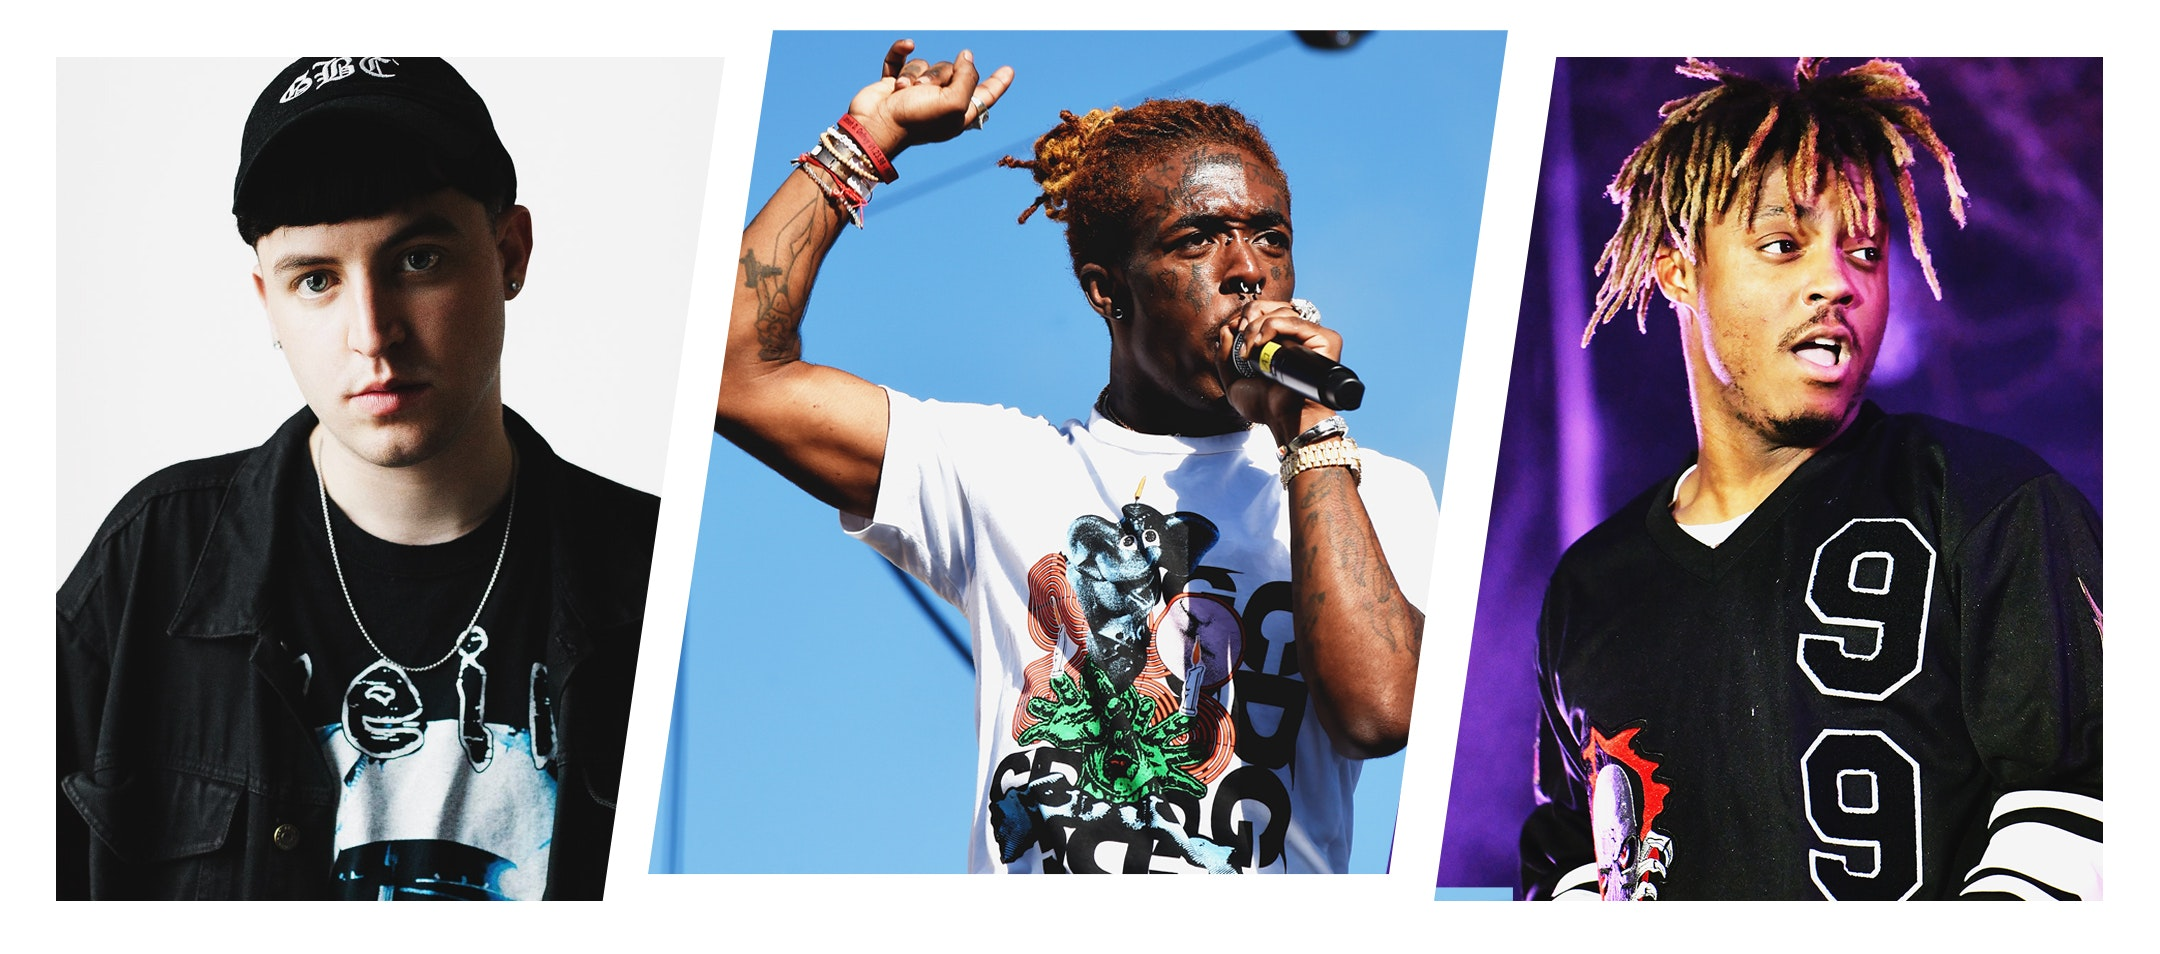 Emo Rap in 2019: Meet the Superstars, Up-and-Comers and